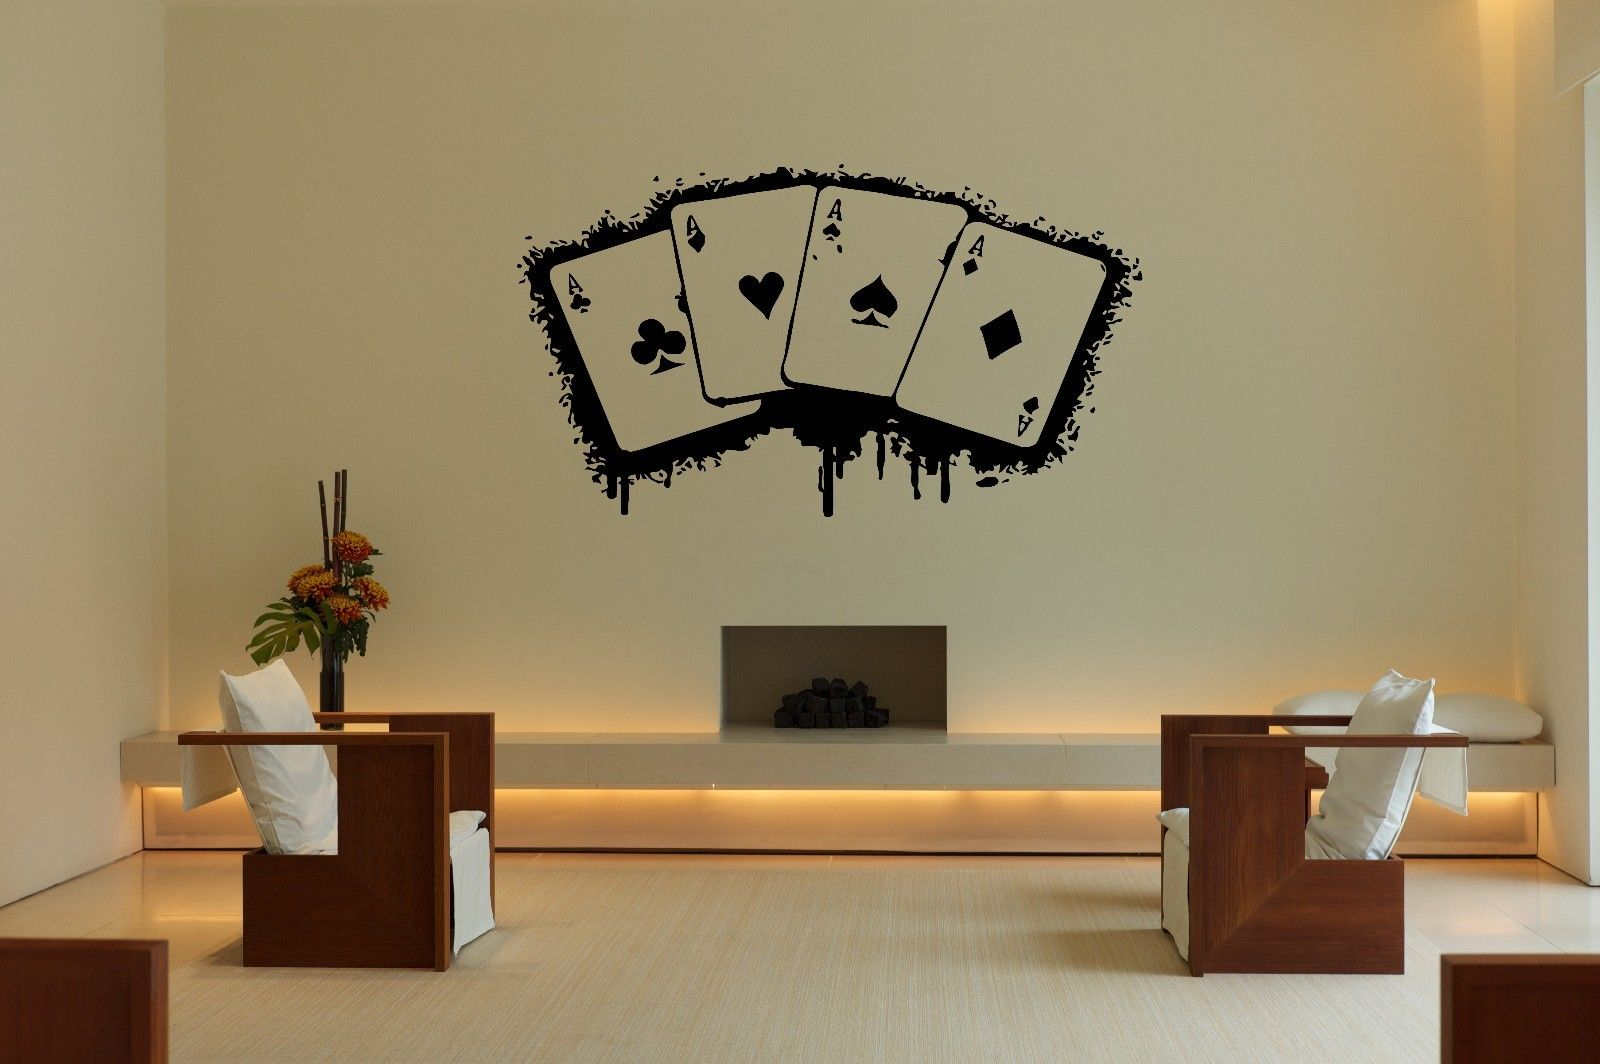 HWHD Wall Vinyl Sticker Decal Decor Room Design Ace Card Game Play Fun Casino free shipping